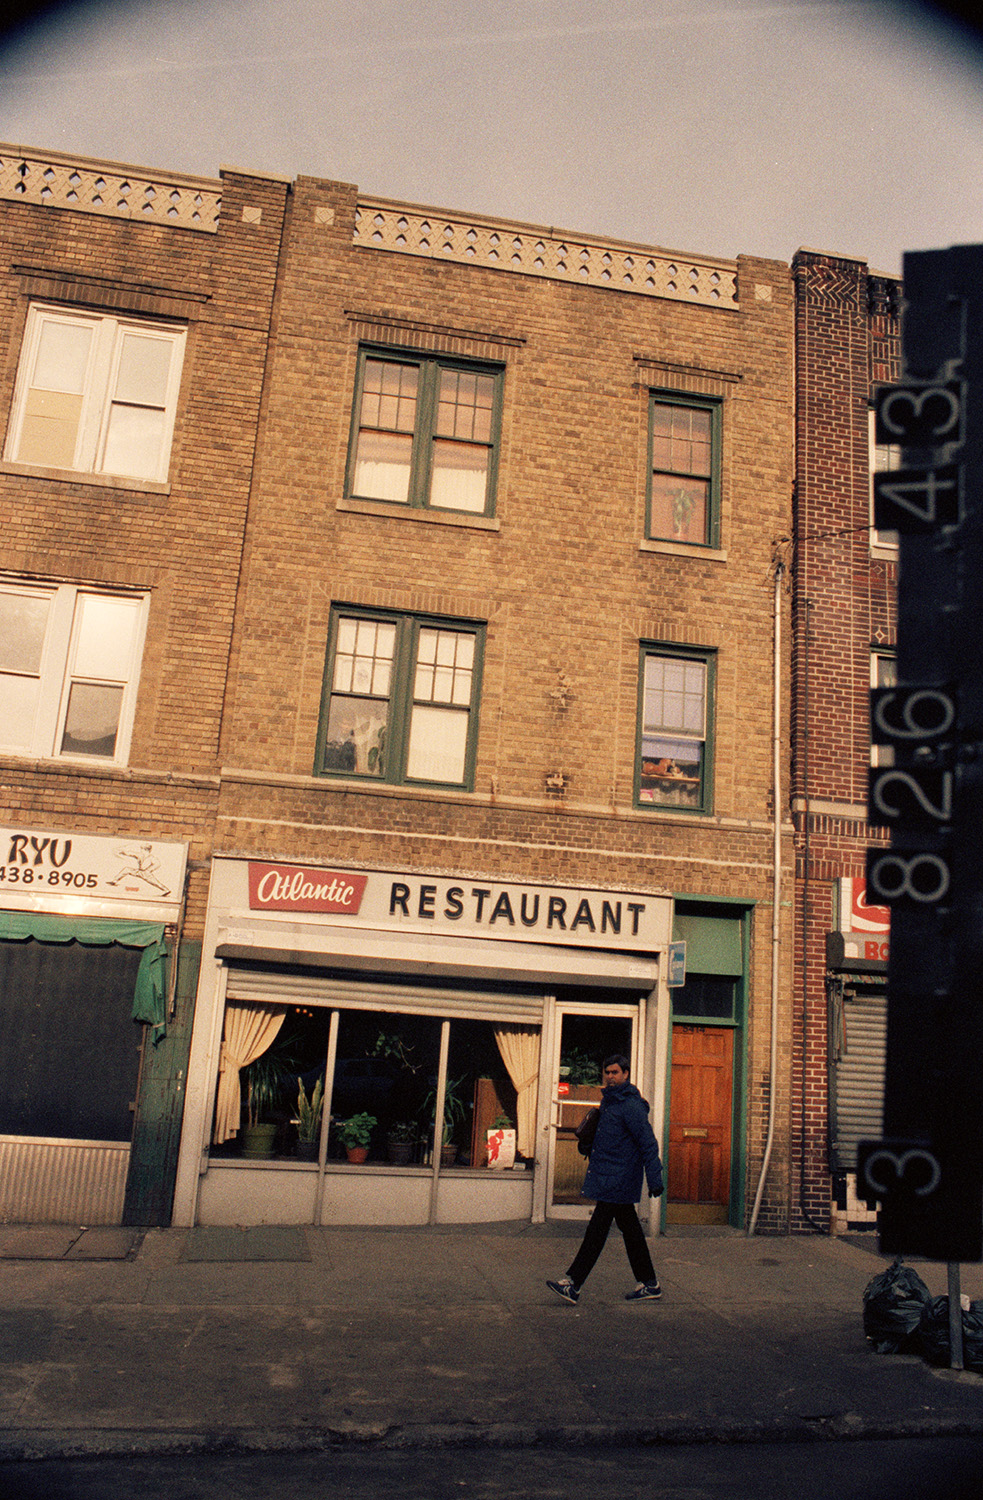 5414 8th Ave. (at 54th St.), Brooklyn, 1983-1988. NYC Municipal Archives.